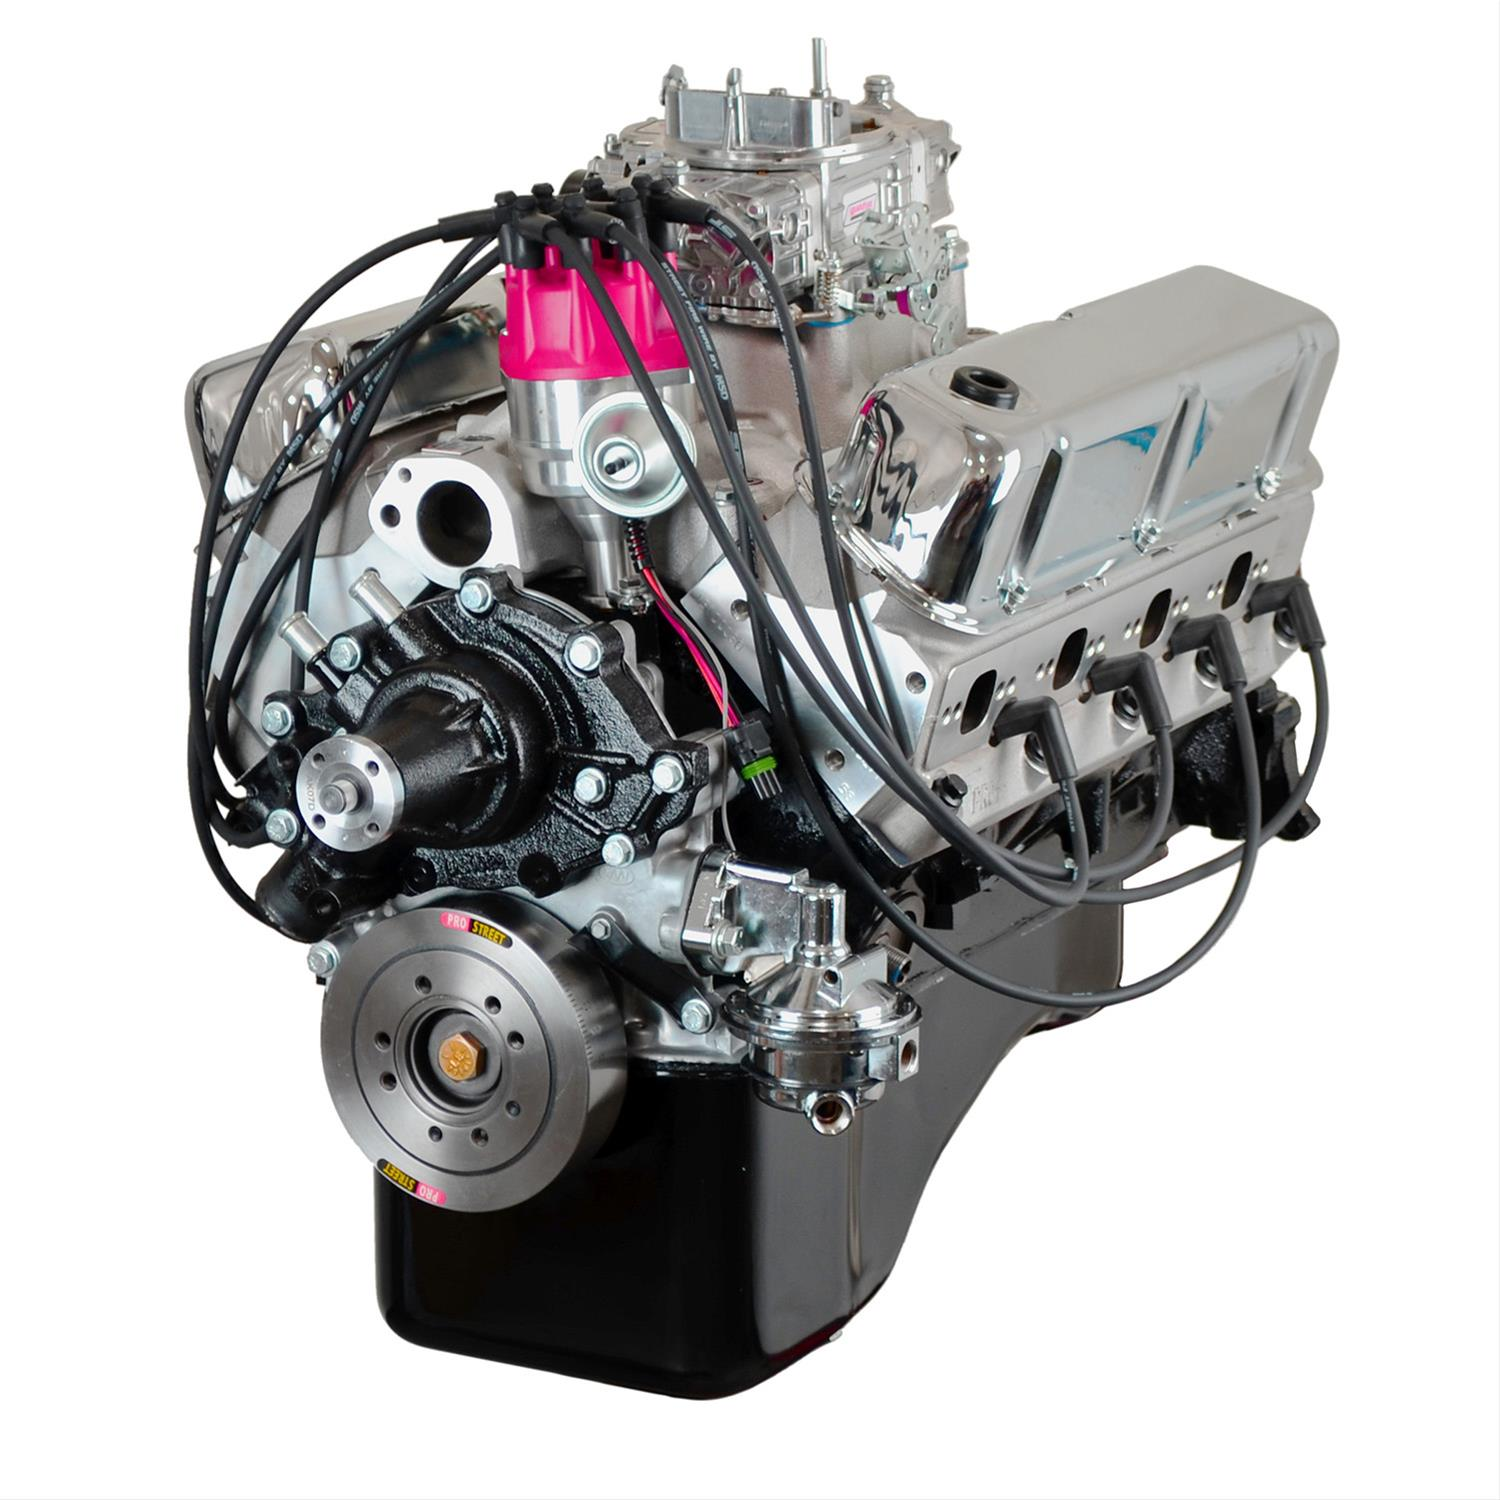 ATK High Performance Ford 302 350 HP Stage 3 Long Block Crate Engines HP78C